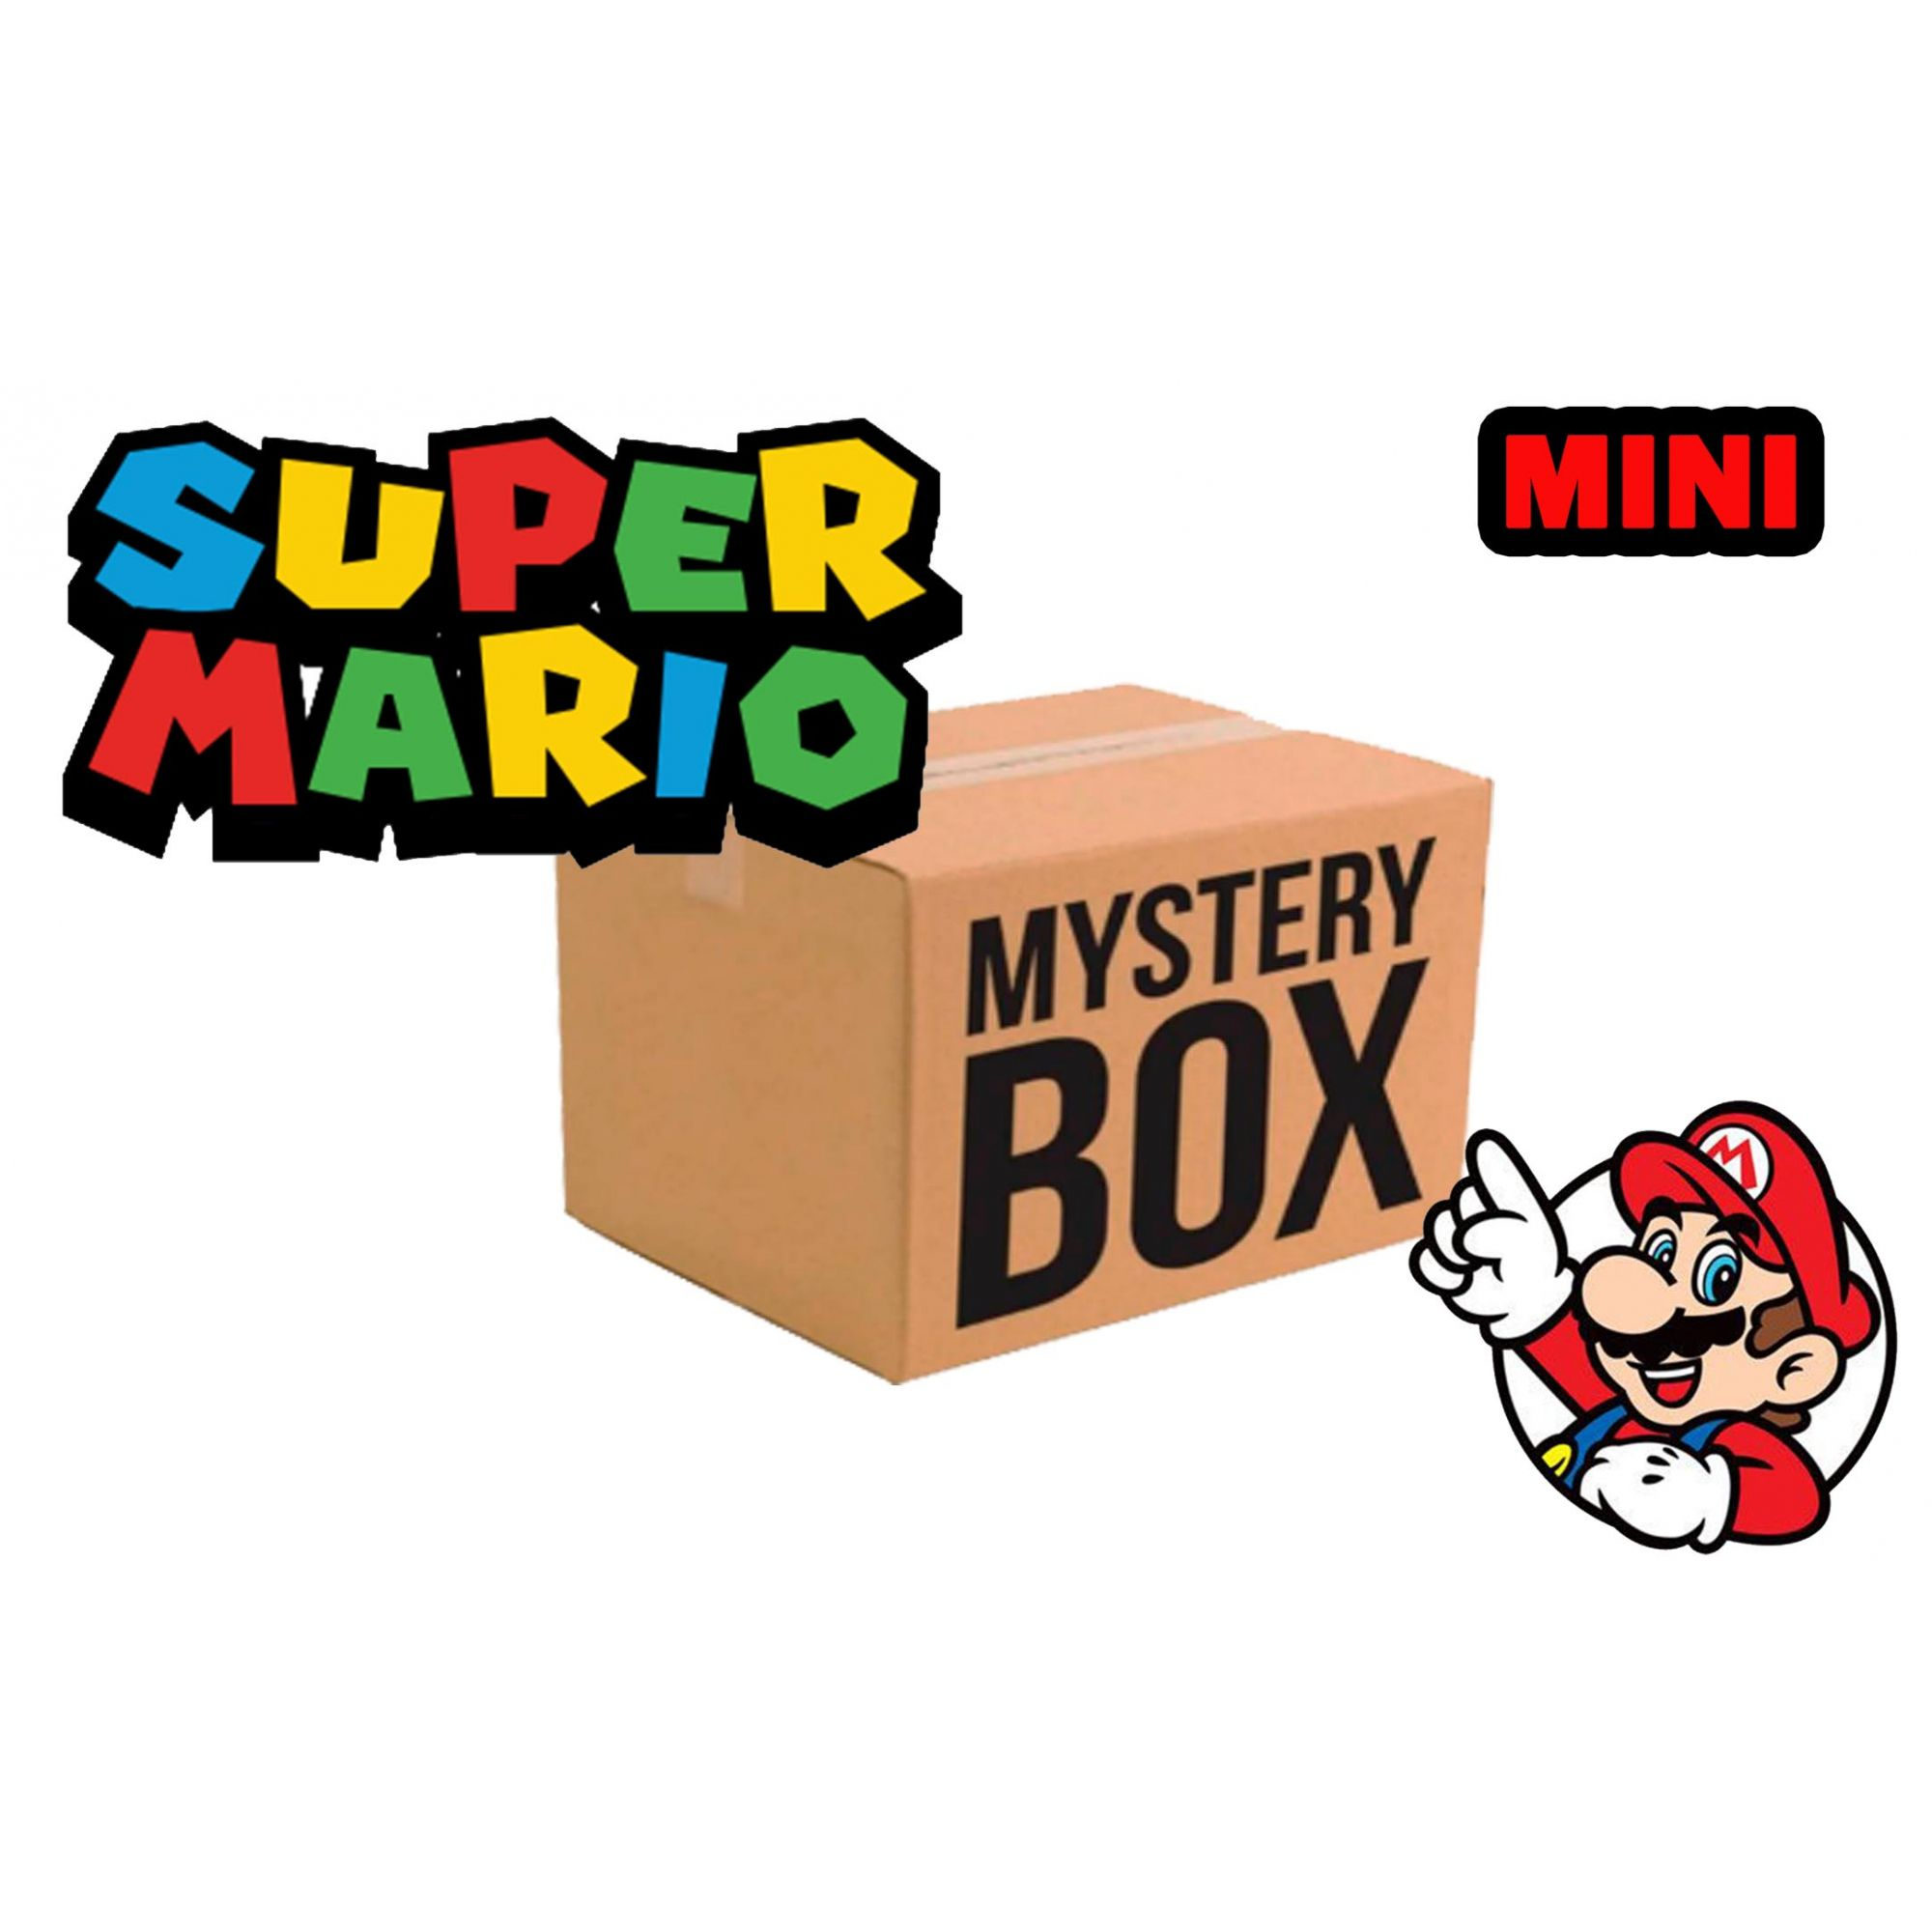 MINI CAIXA MISTERIOSA MYSTERY BOX SURPRESA SUPER MARIO BROS